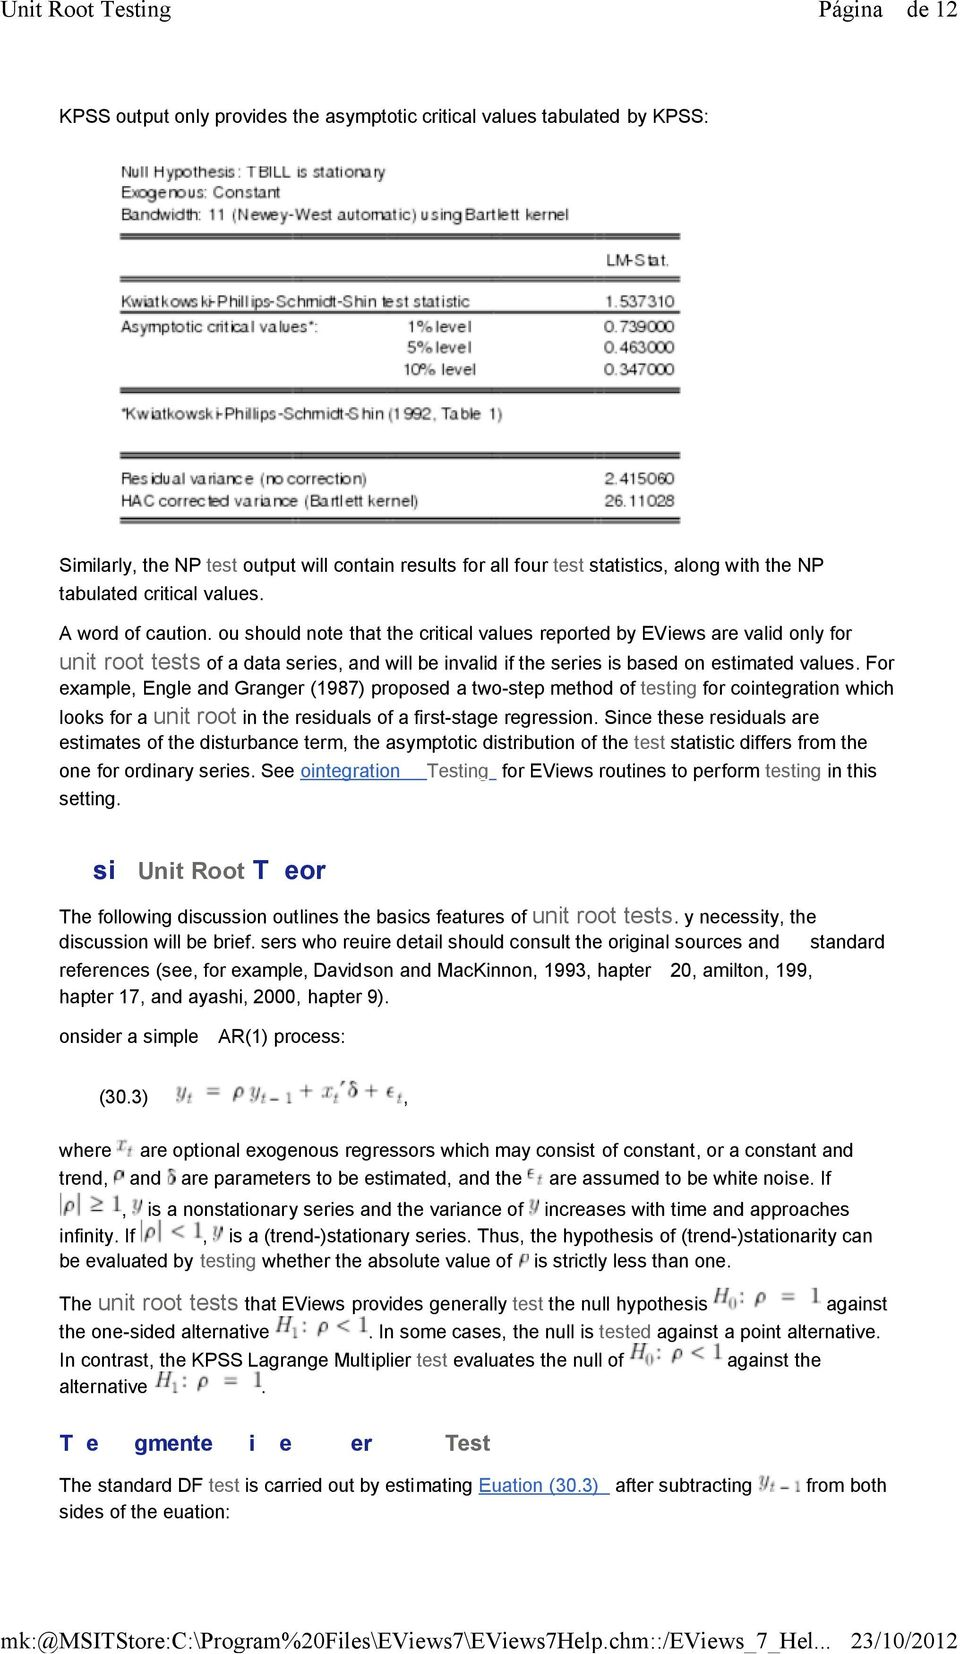 Performing Unit Root Tests in EViews  Unit Root Testing - PDF